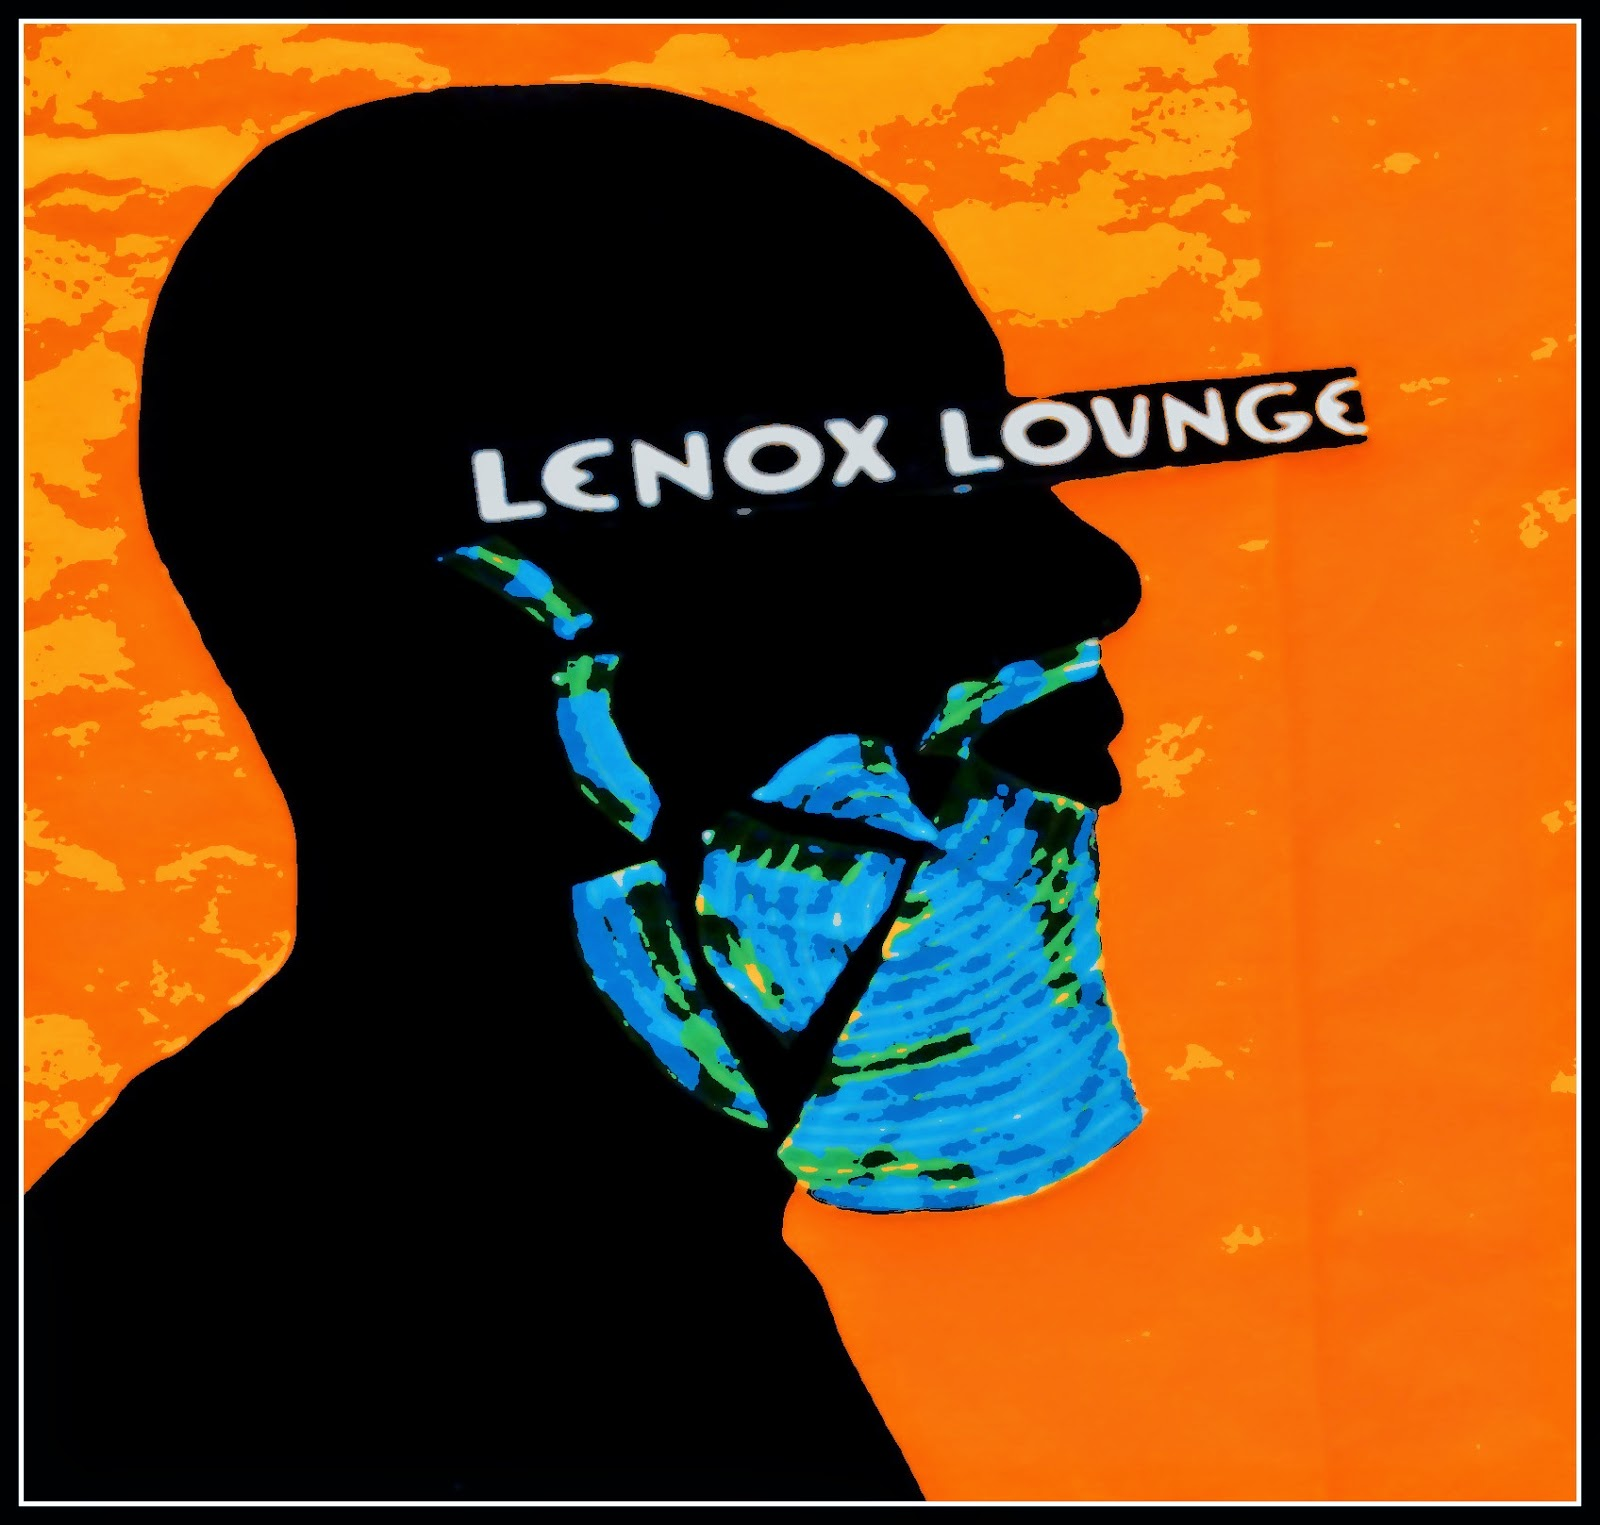 Black man with a beard afro jazz style with Lenox Lounge from the Harlem Renaissance across the eyes